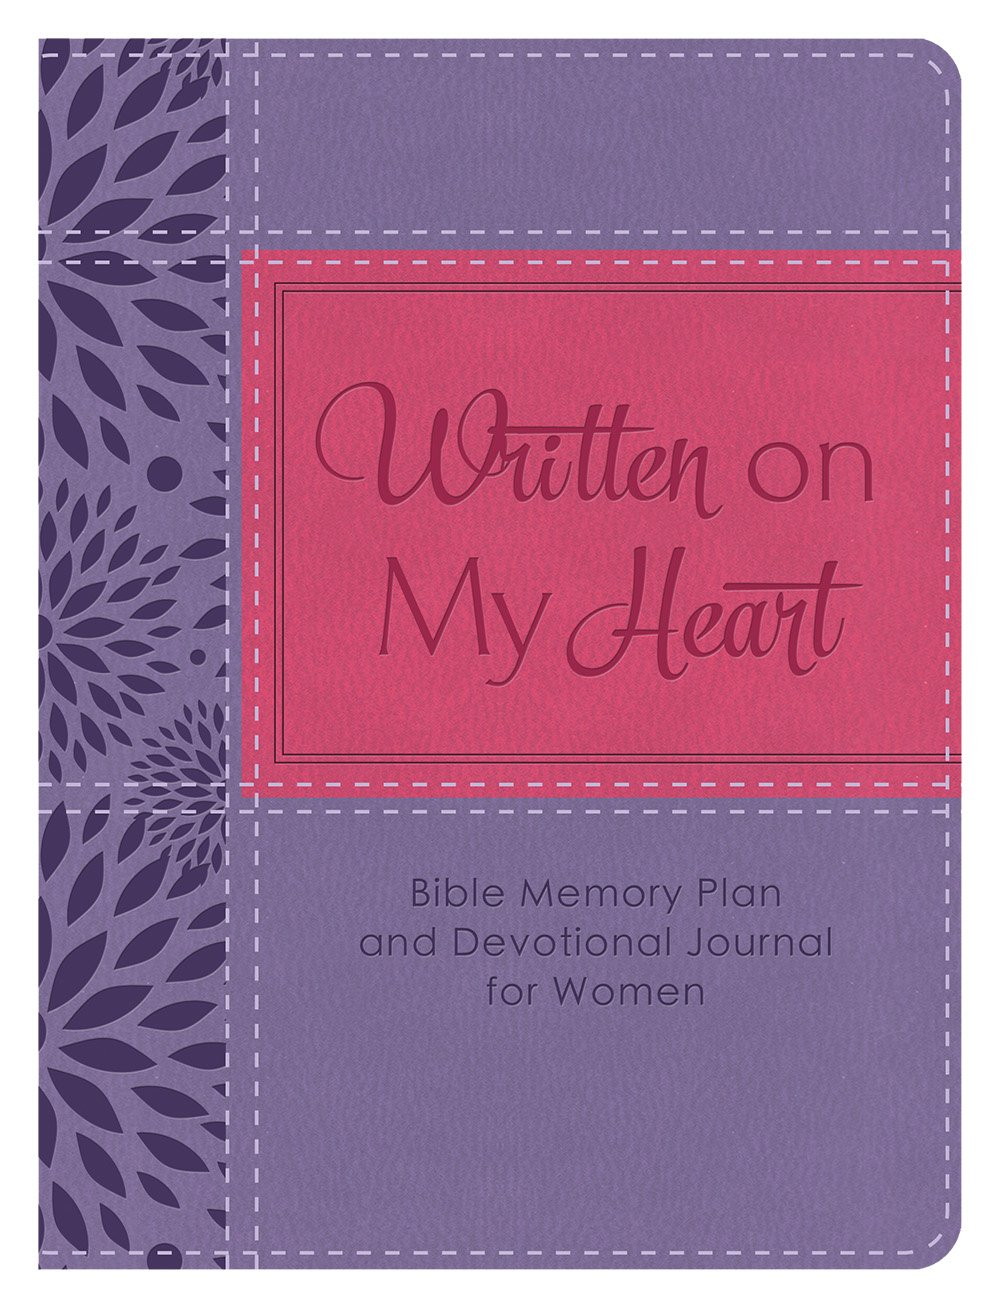 Written on My Heart: Bible Memory Plan and Devotional